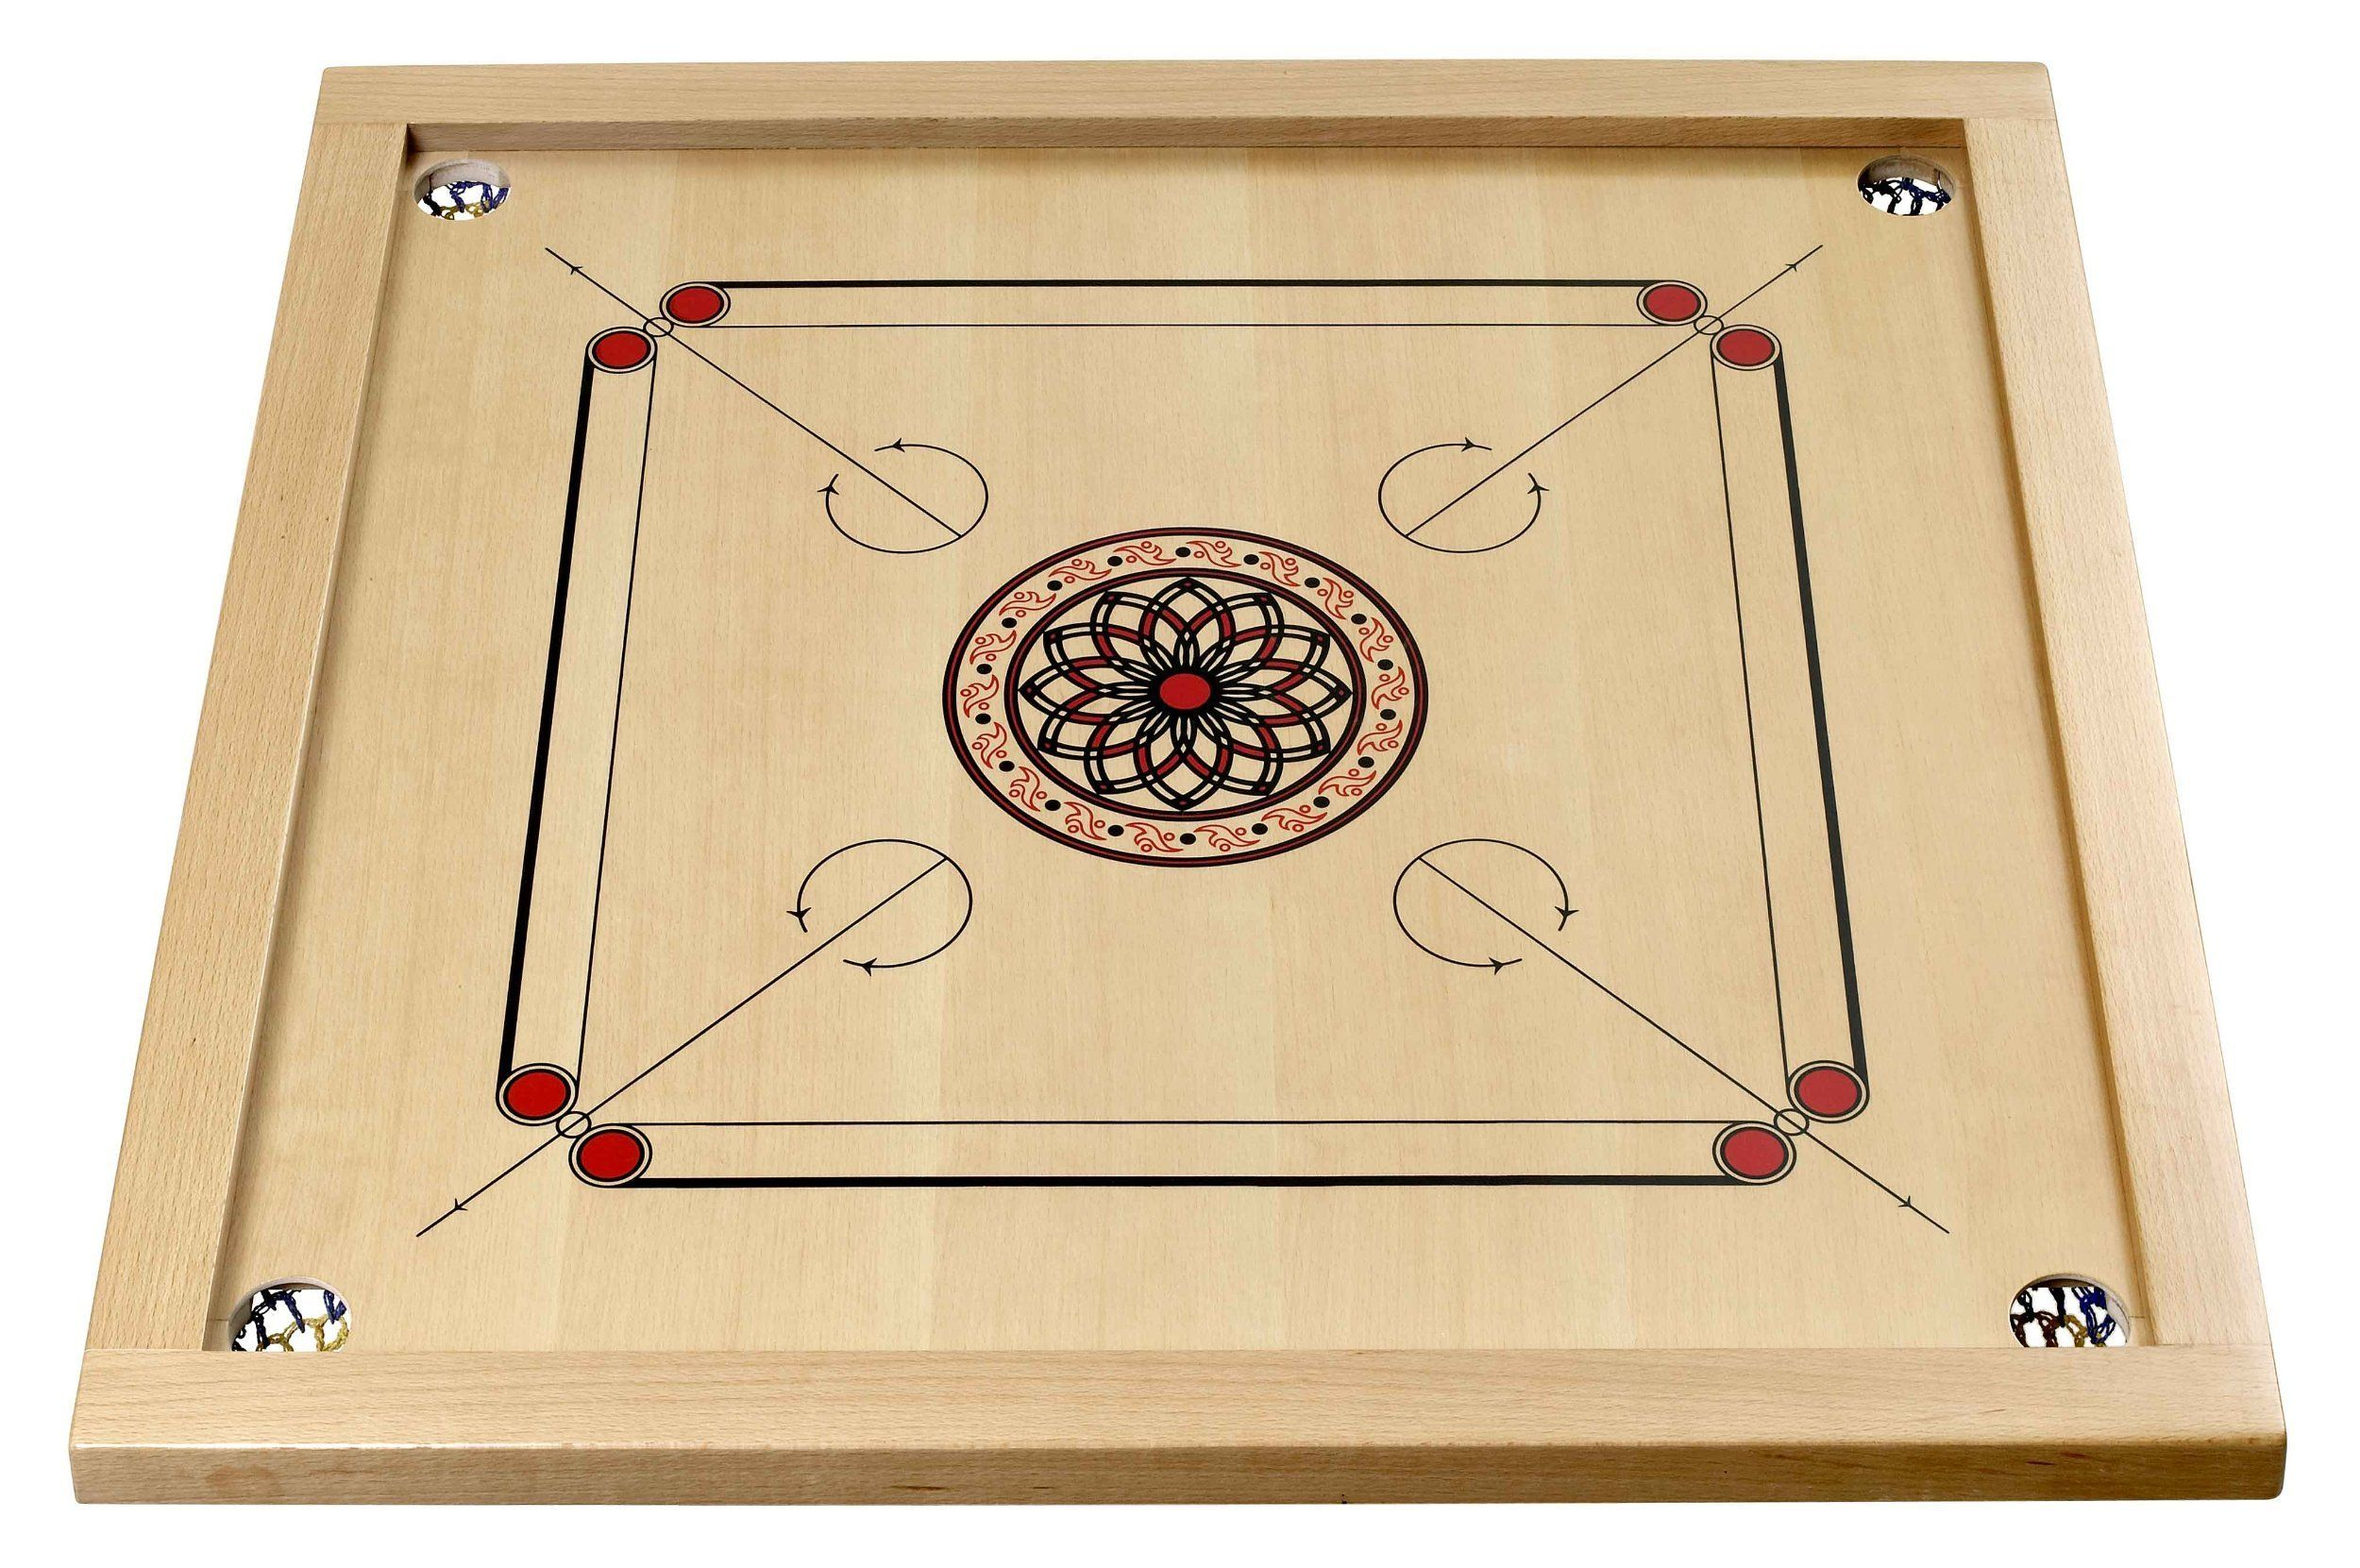 Since I Can T Have A Real Pool Table Philos 8208 Carrom Classic Geschicklichkeitsspiel